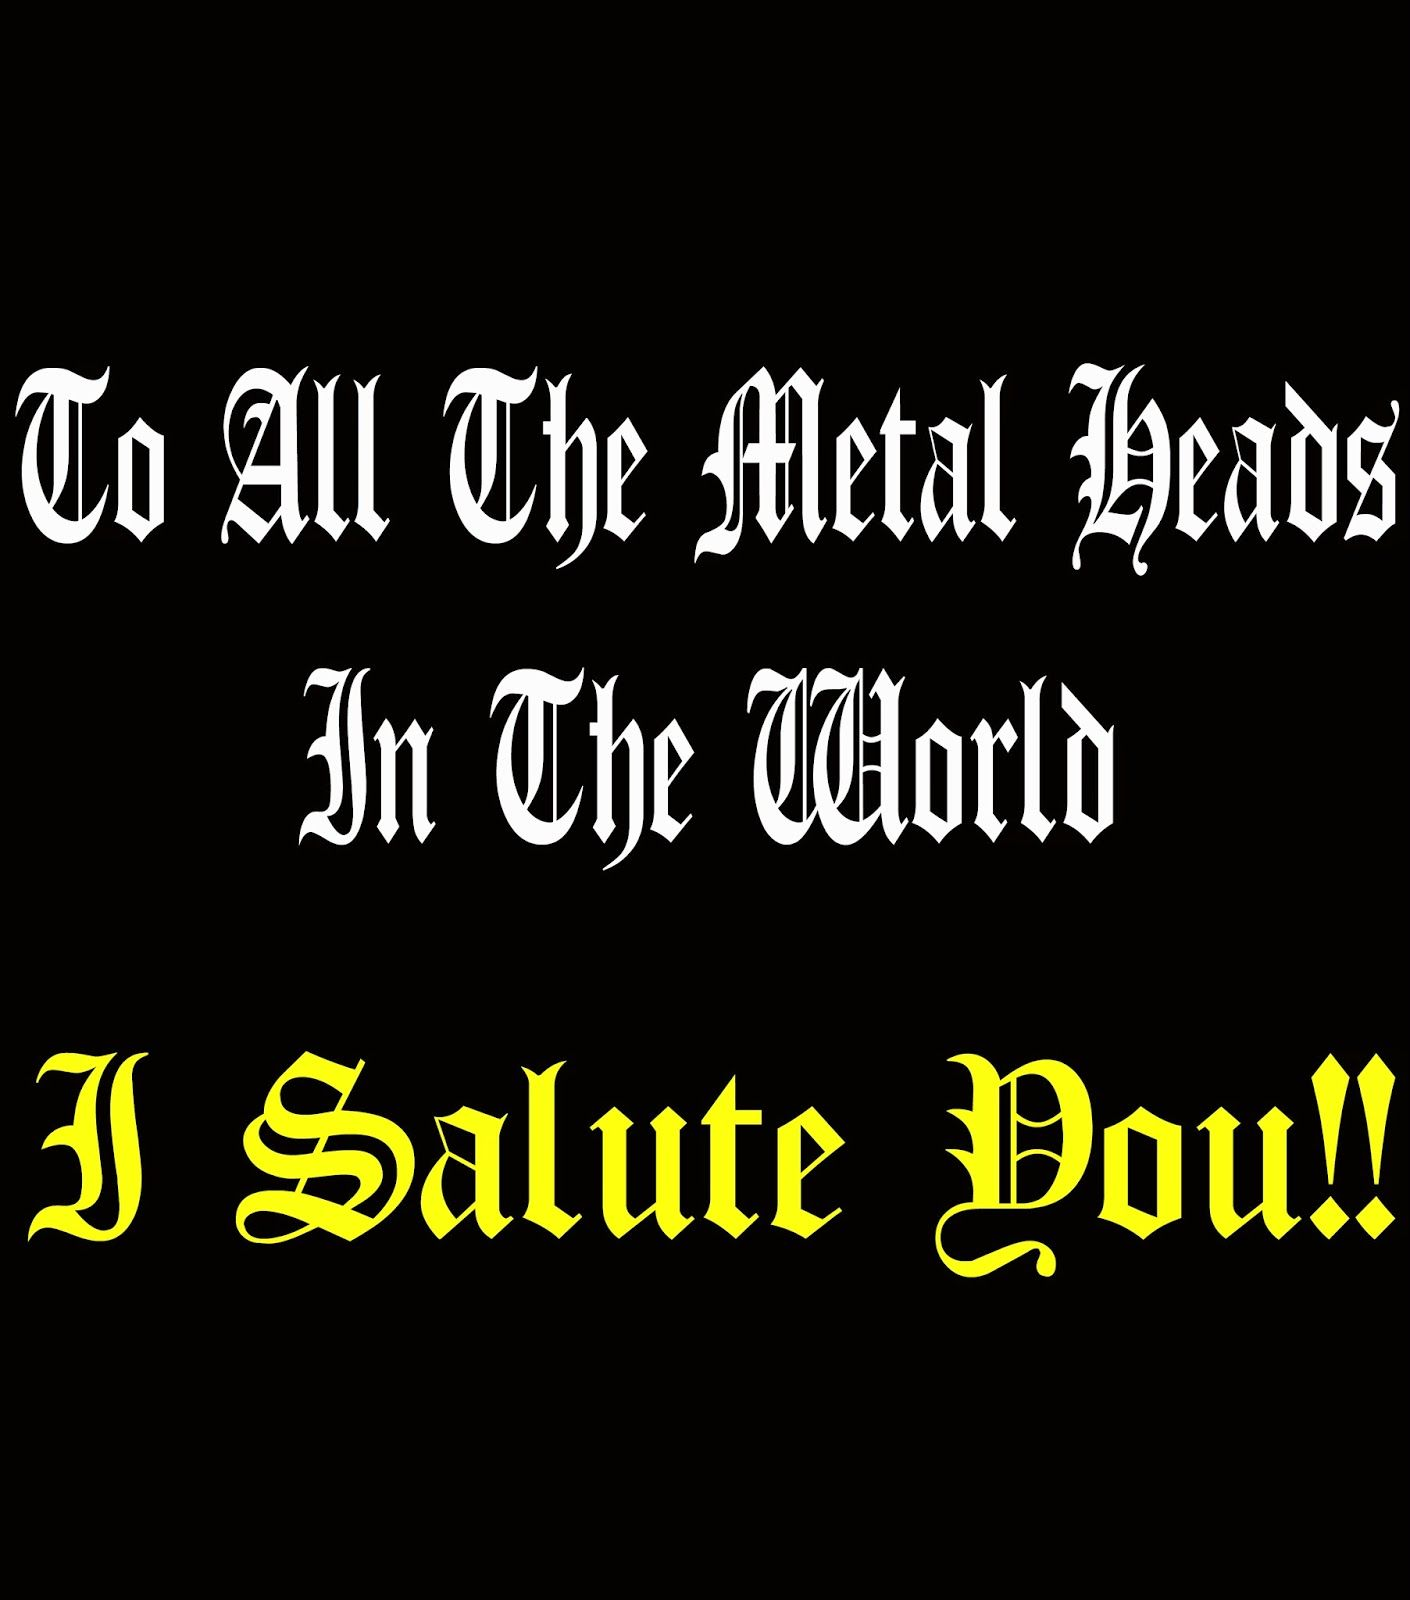 Mijn T-shirt-prints: To All The Metal Heads In The World, I Salute You!...